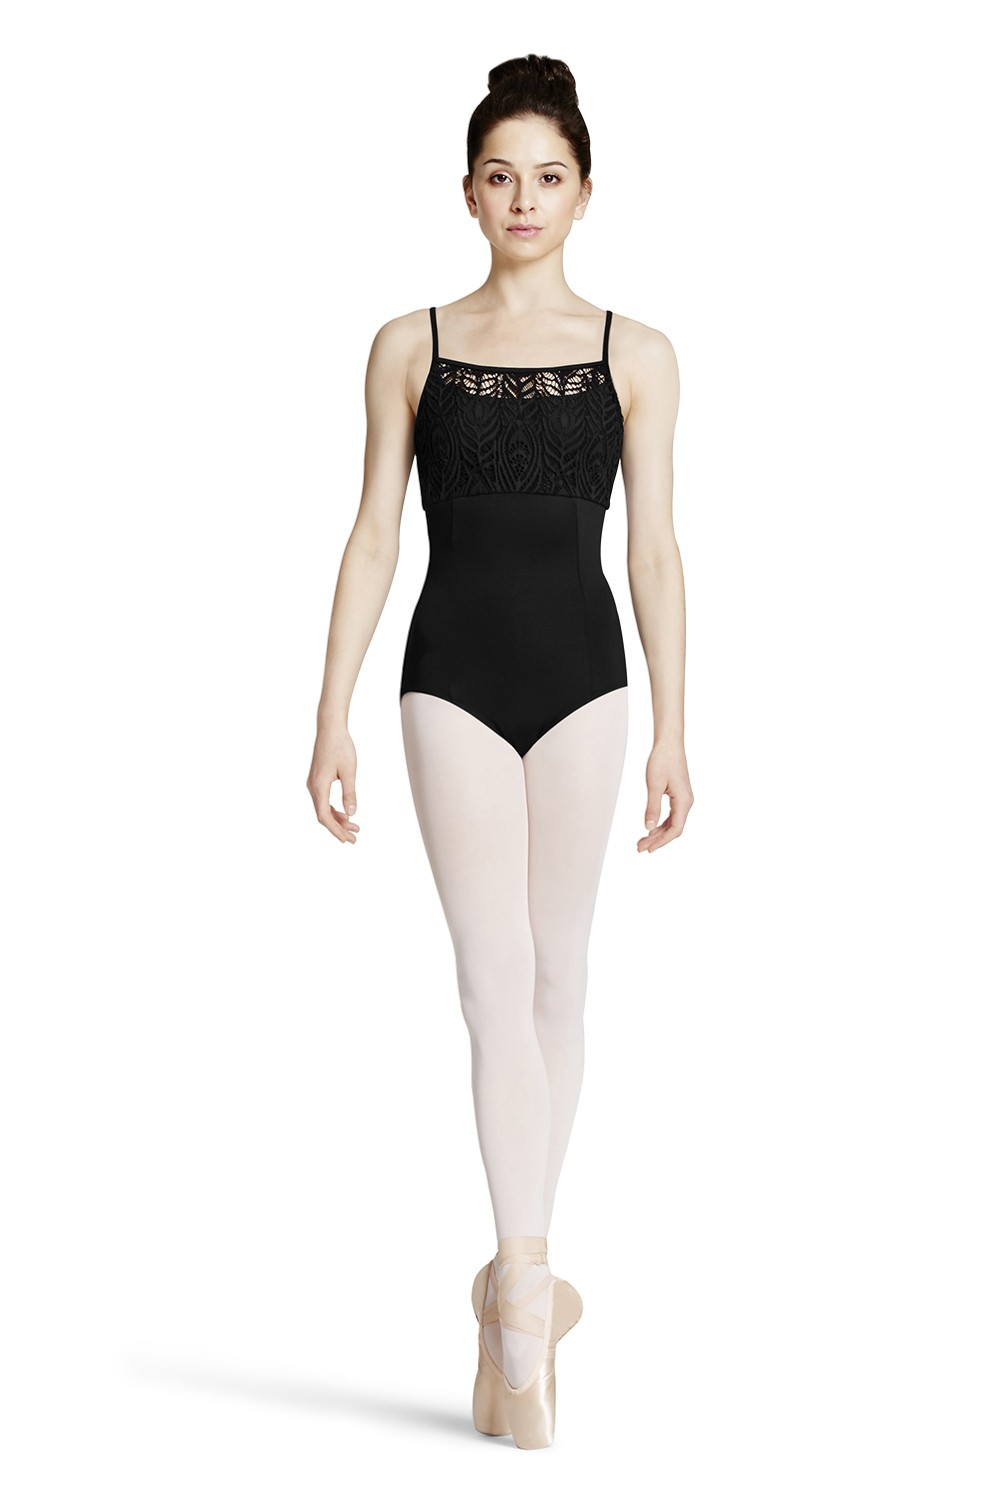 Body A Spallina Sottile Peacock Plume Womens Camisole Leotards